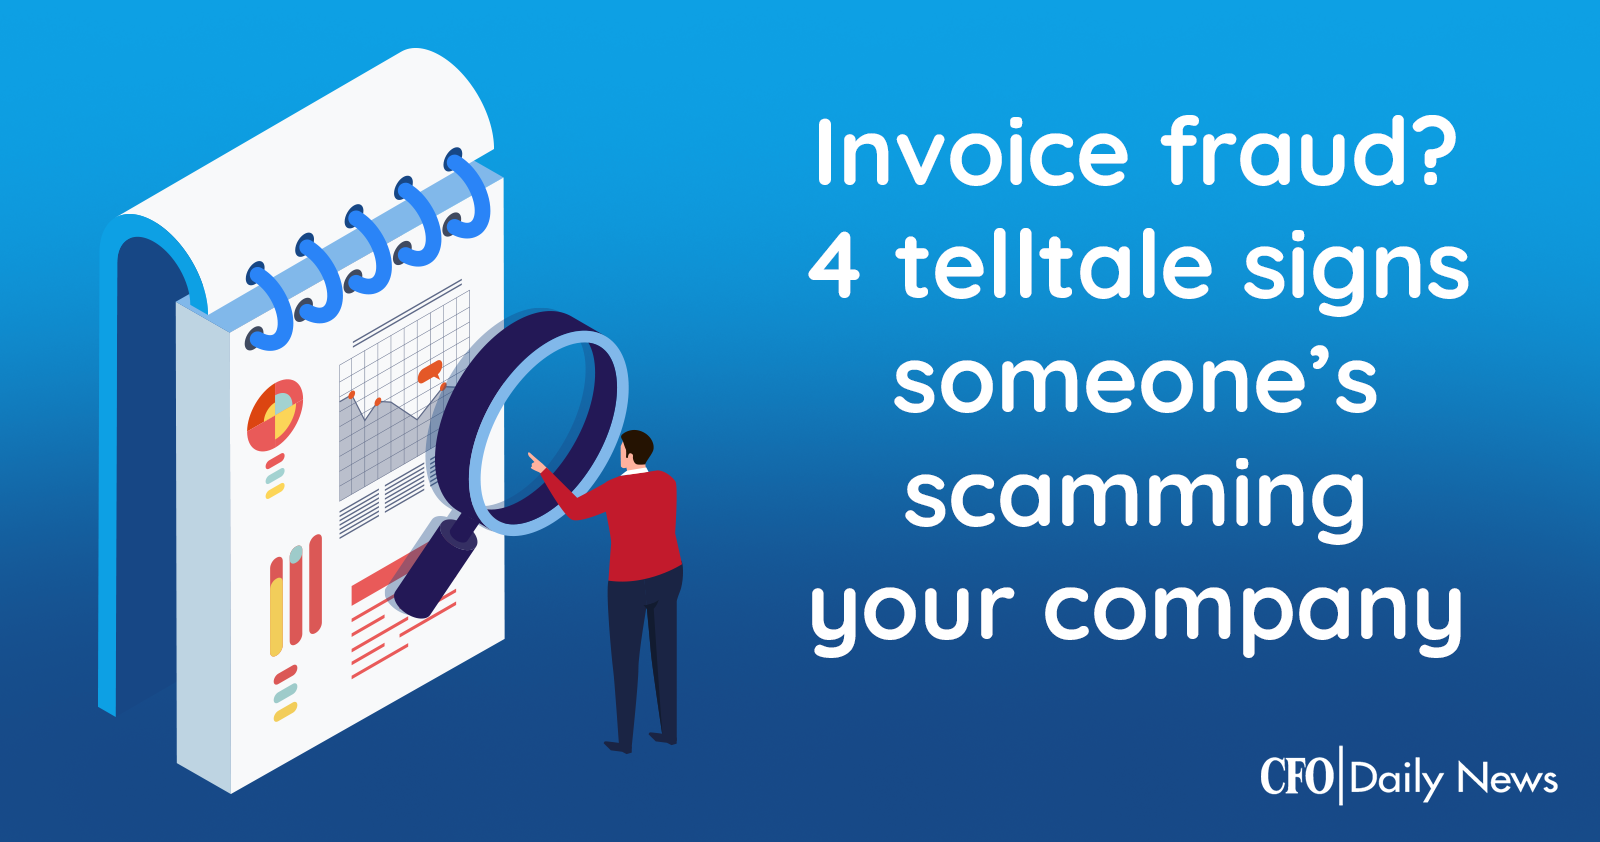 Invoice fraud? 4 telltale signs